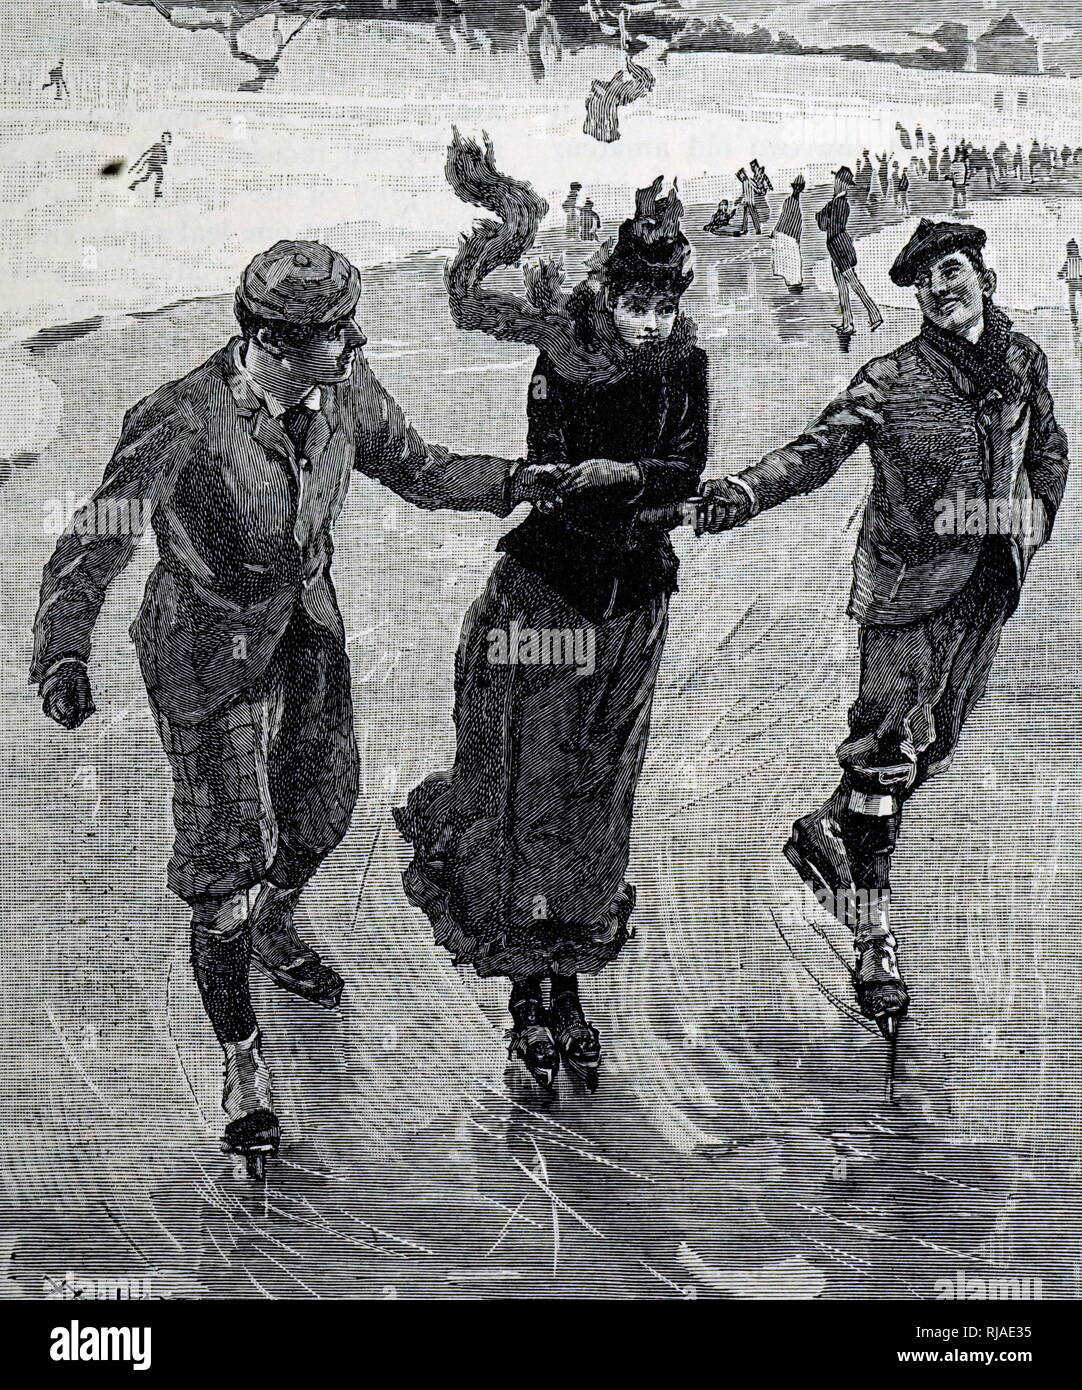 Illustration depicting 19th century, ice-skaters - Stock Image